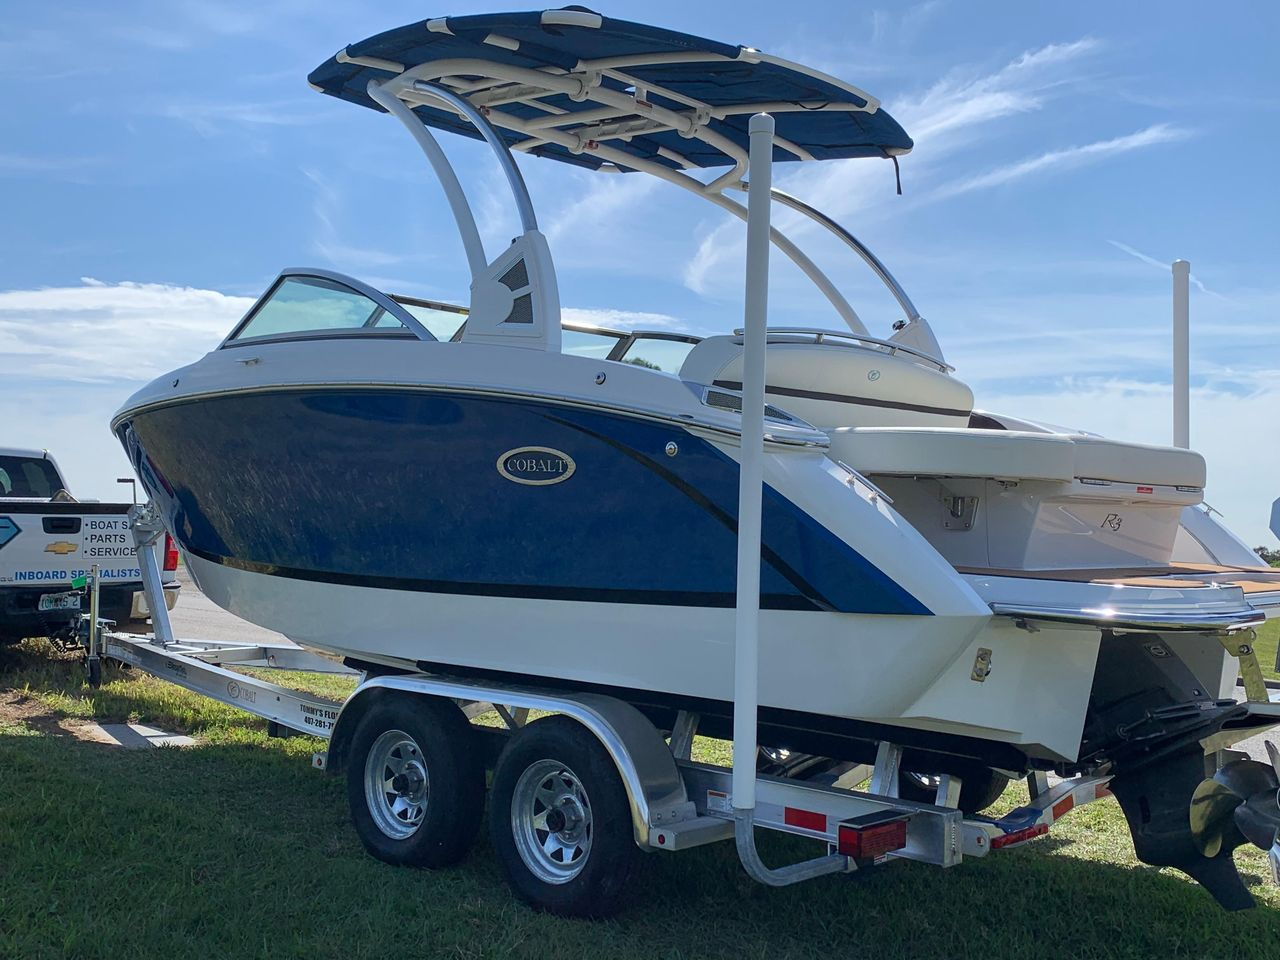 2019 New Cobalt R3R3 Bowrider Boat For Sale - Clermont, FL